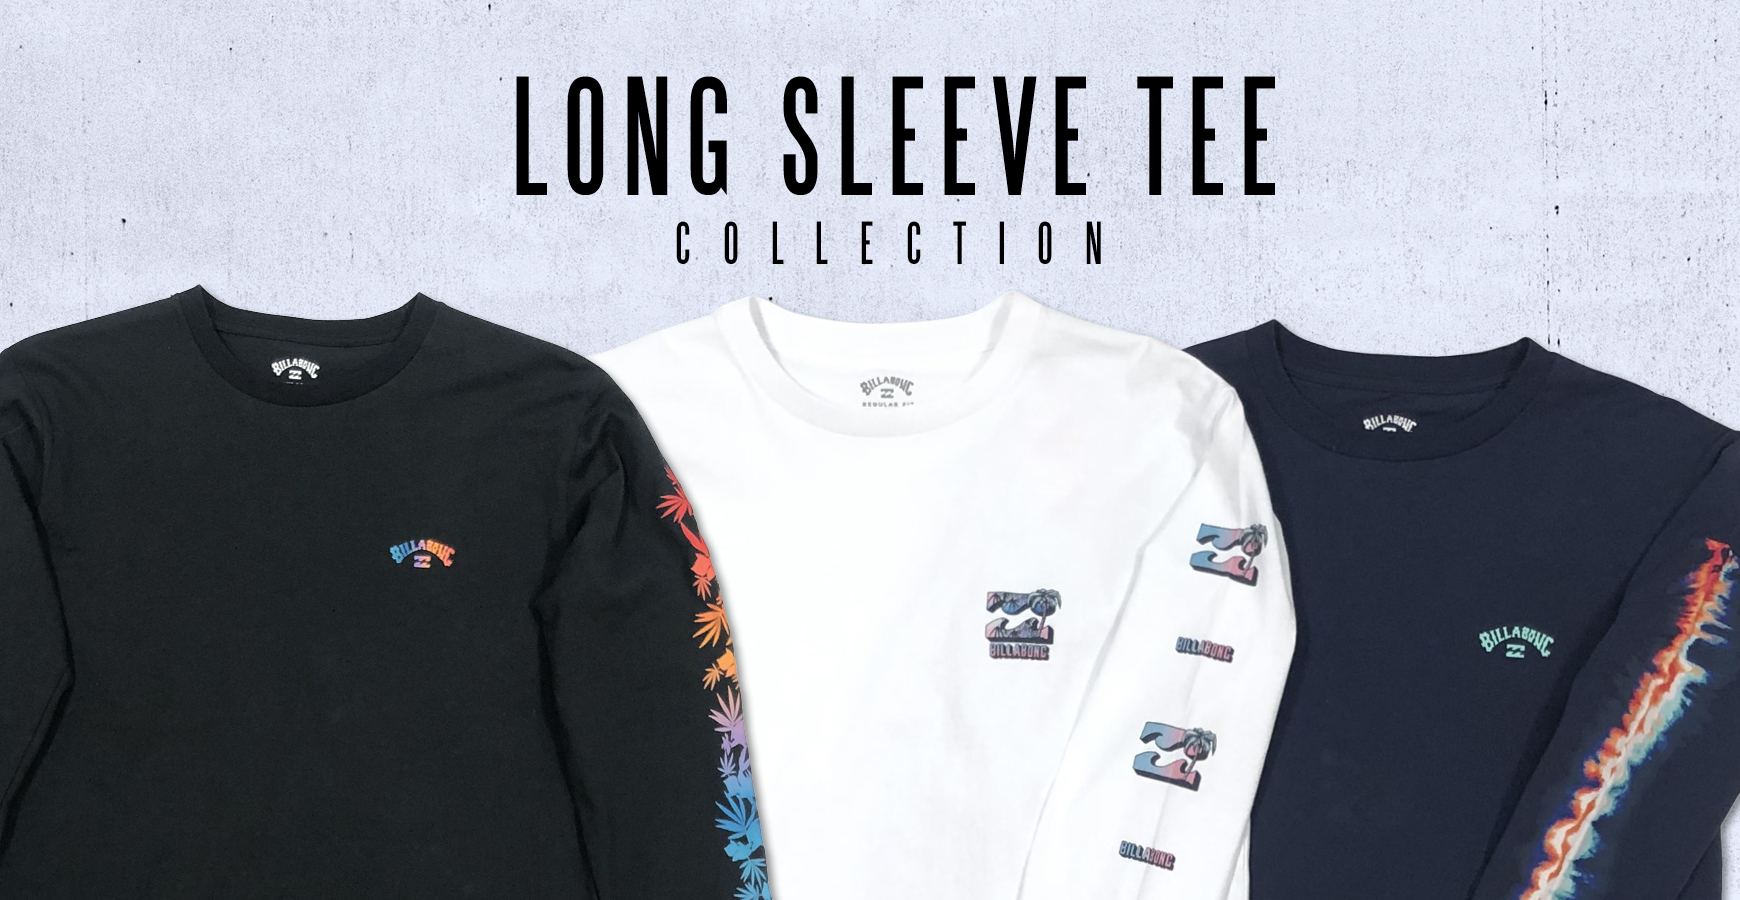 LONG SLEEVE TEE COLLECTION